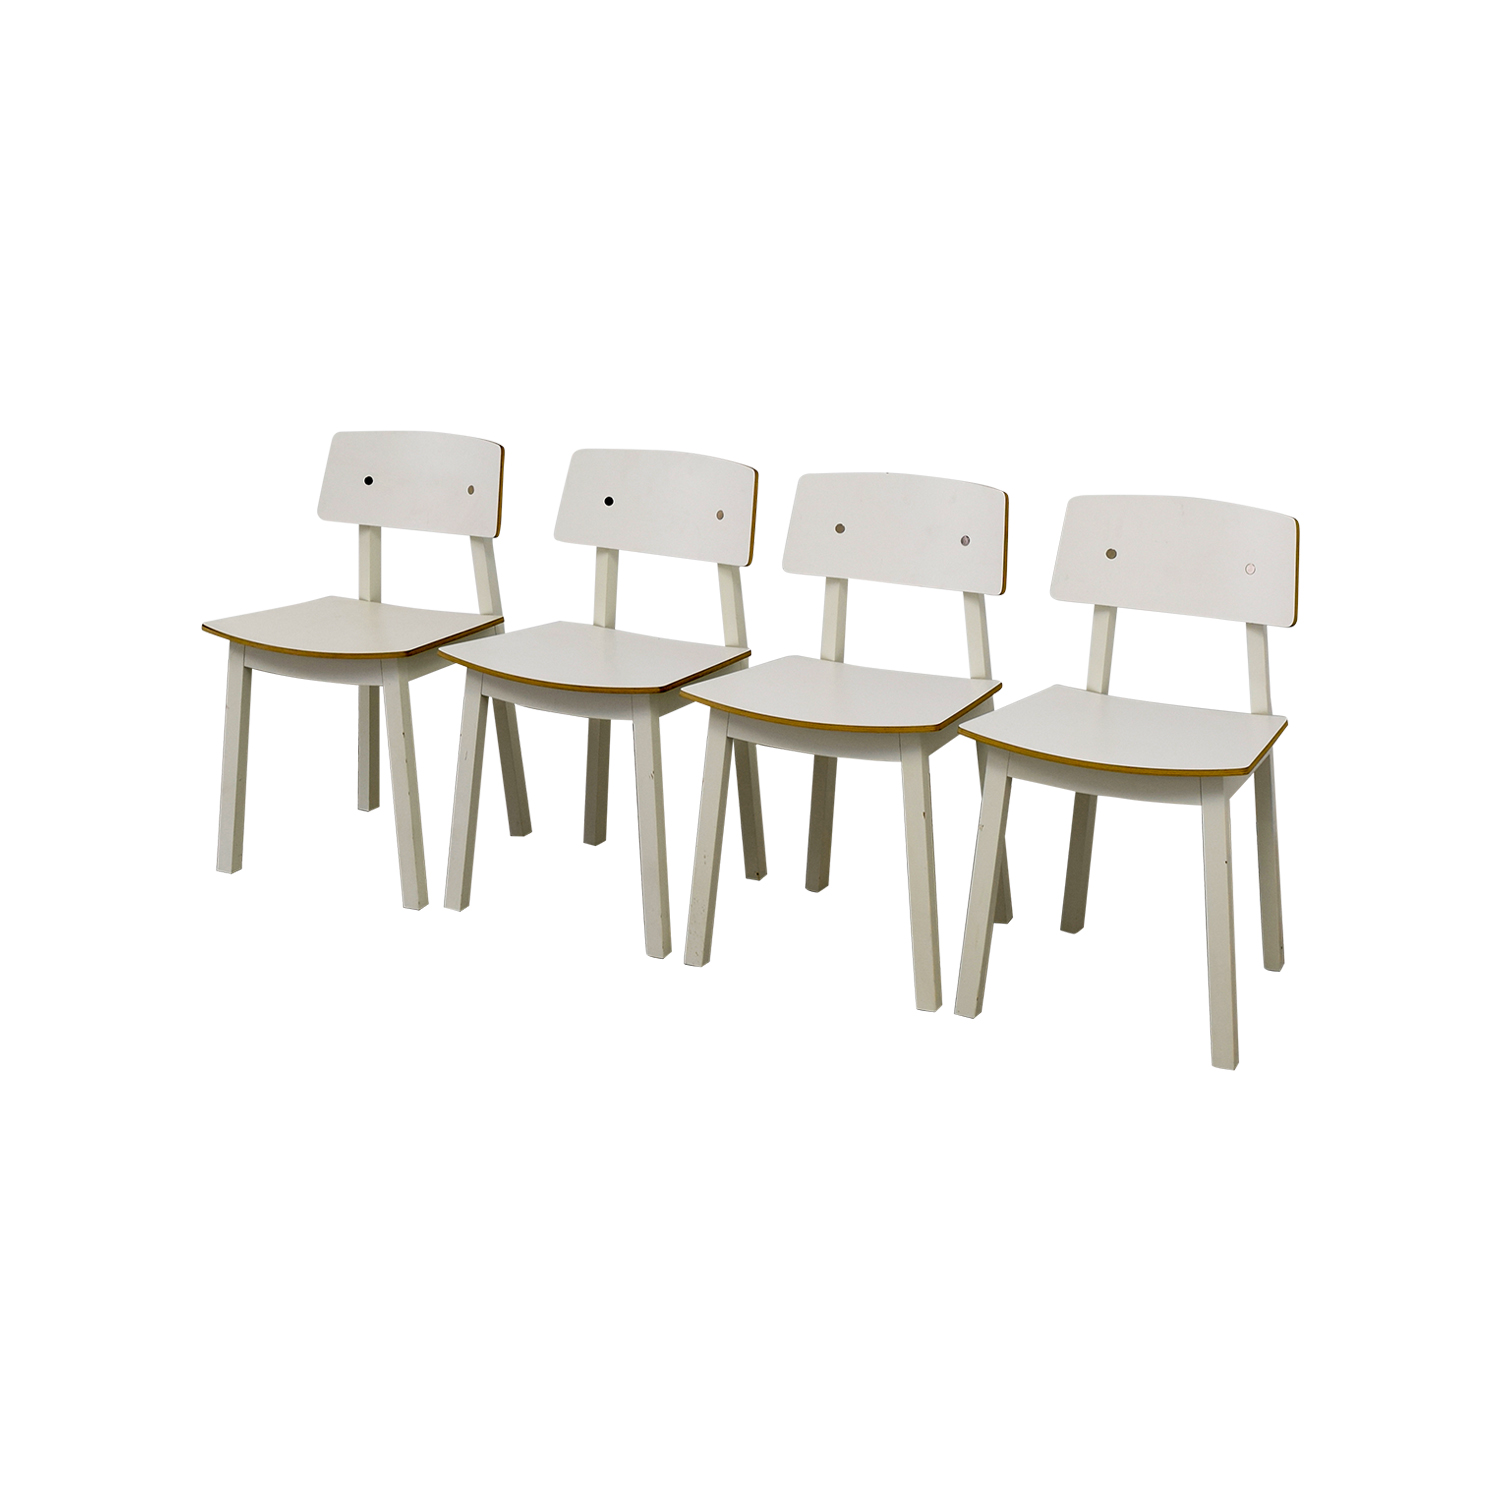 63 Off Ikea Ikea White Dining Chairs Chairs